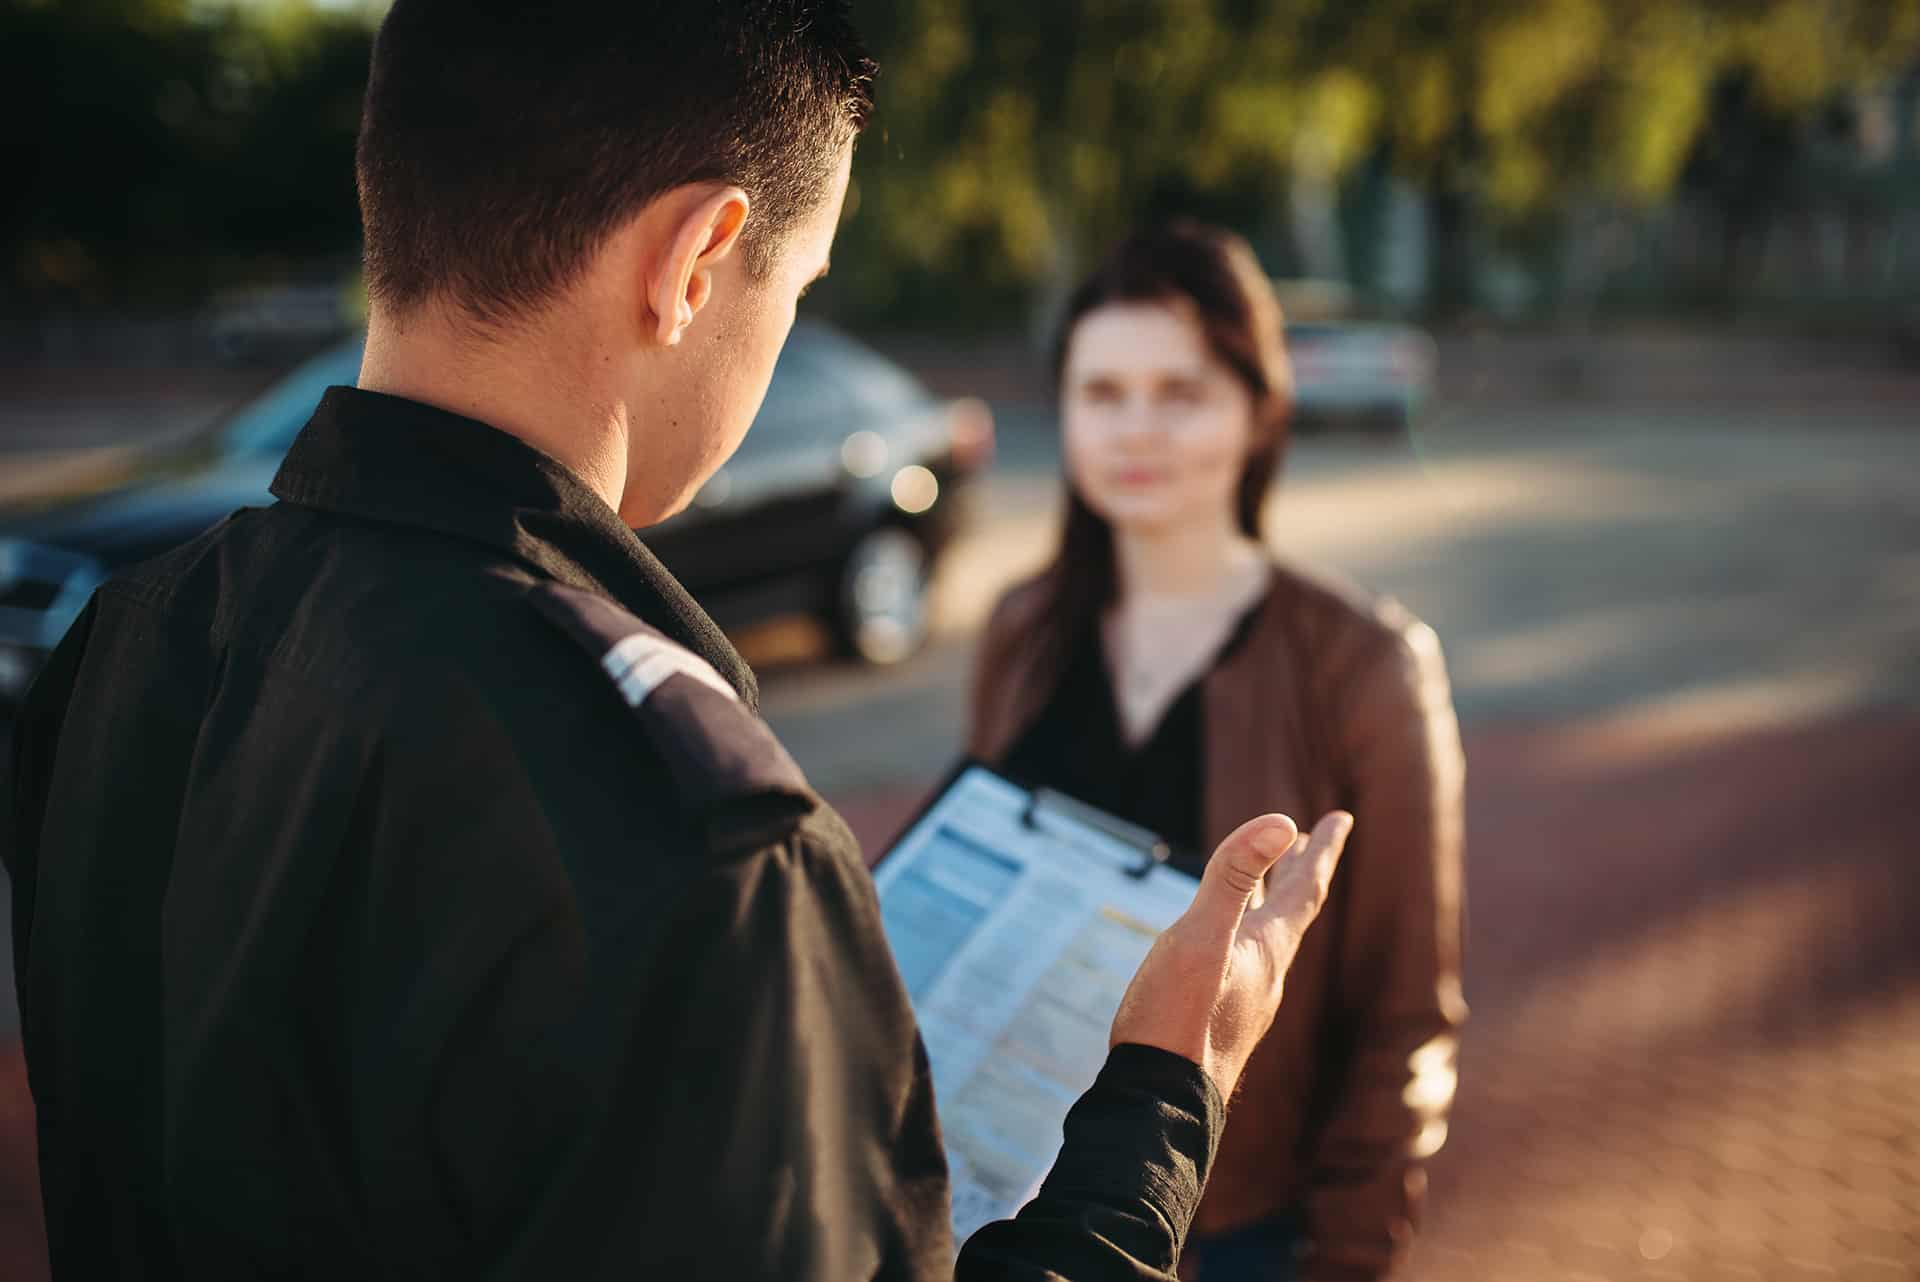 Police officer filing a report with a female